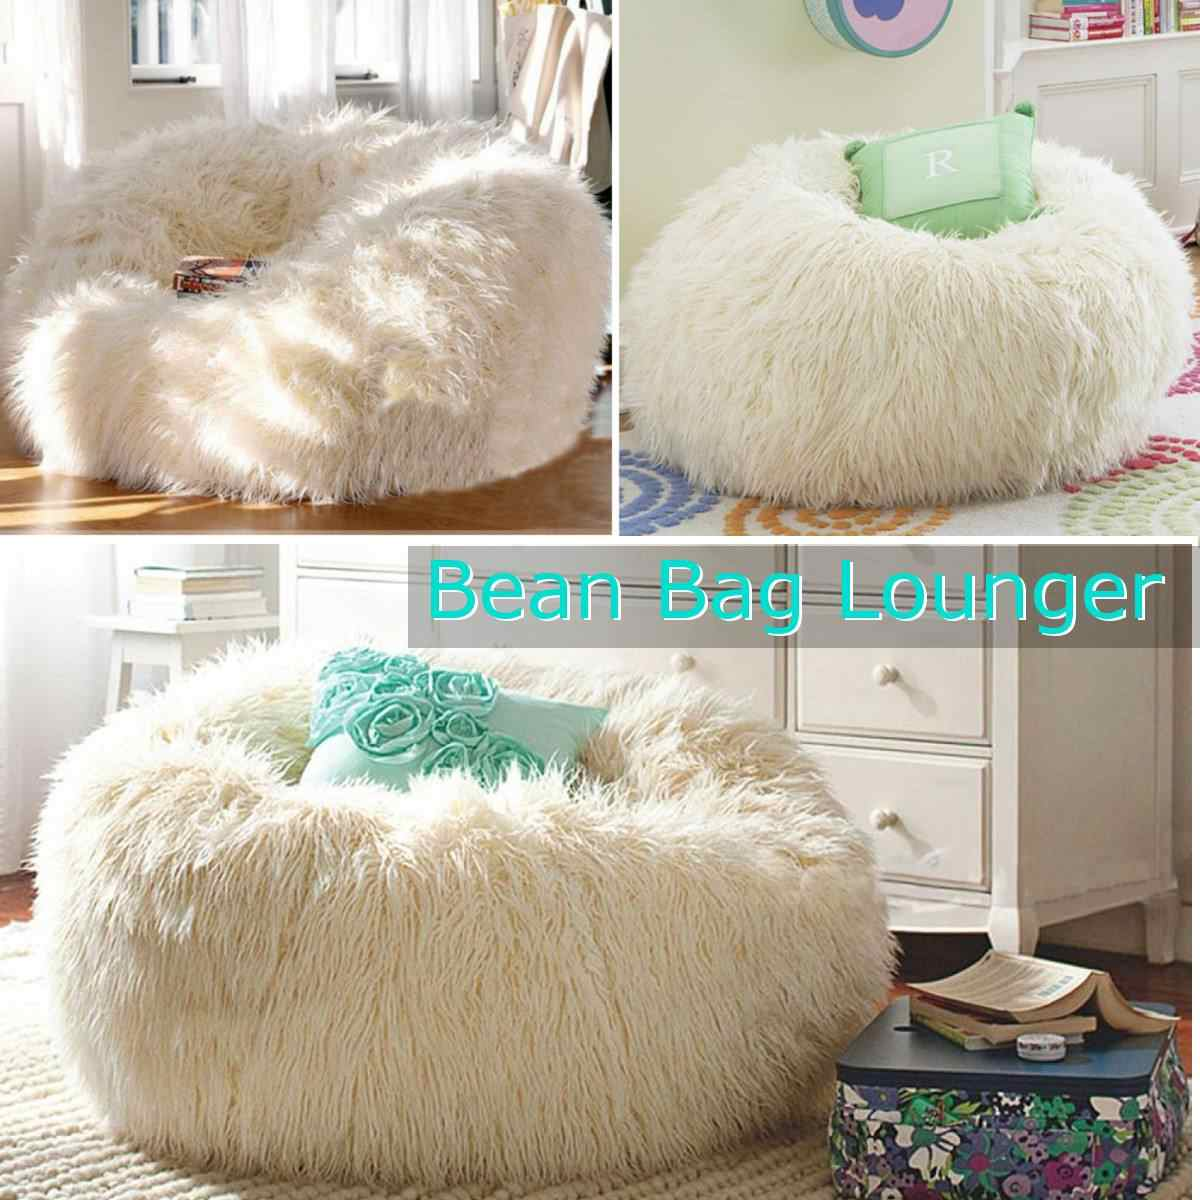 Soft Lazy Bean Bag Sofa Plush Cover Lounger Chairs Seat Living Room Home Furniture Without Filling Beanbag Beds Lazy Seat Bean Bag Sofas Aliexpress